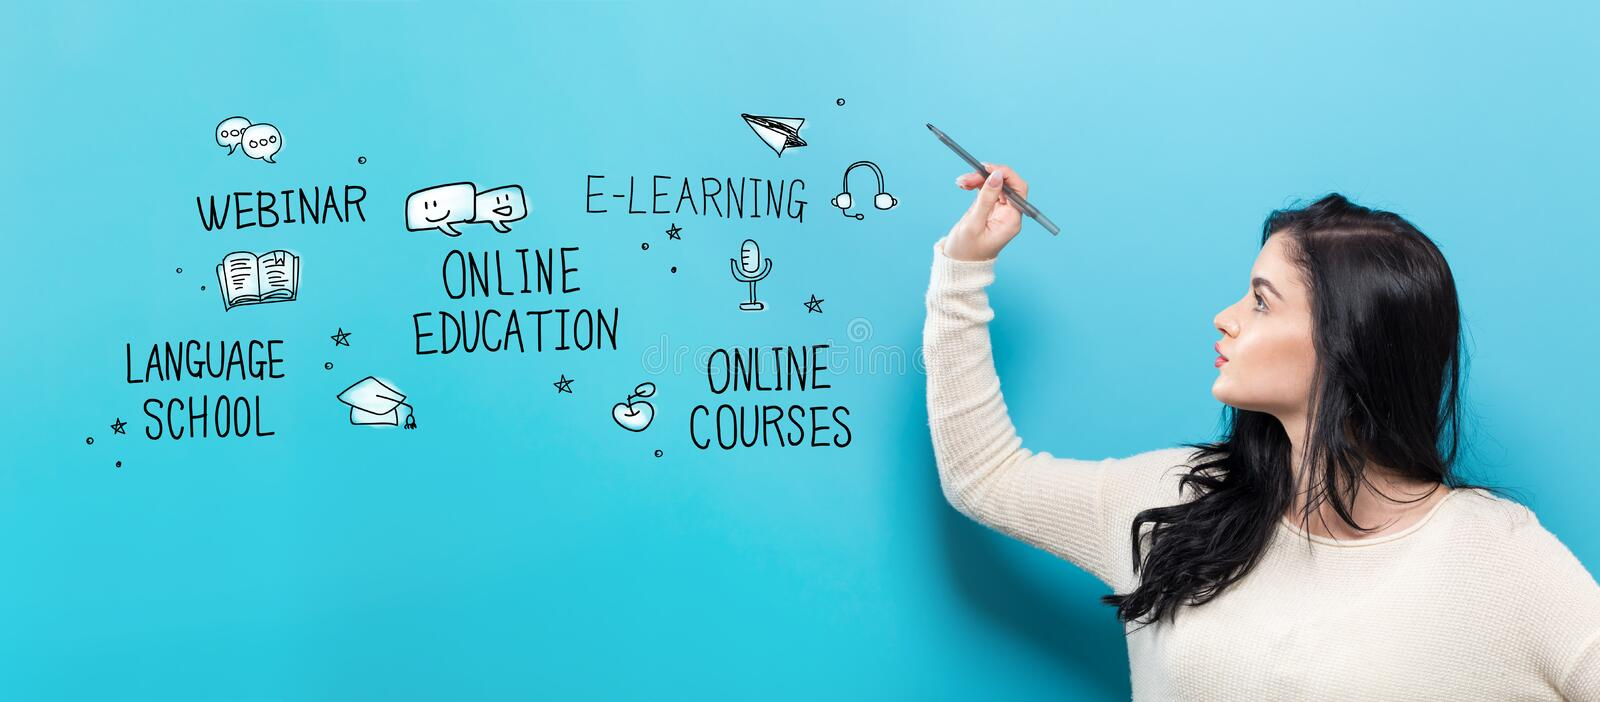 Online Education with young woman holding a pen royalty free stock image